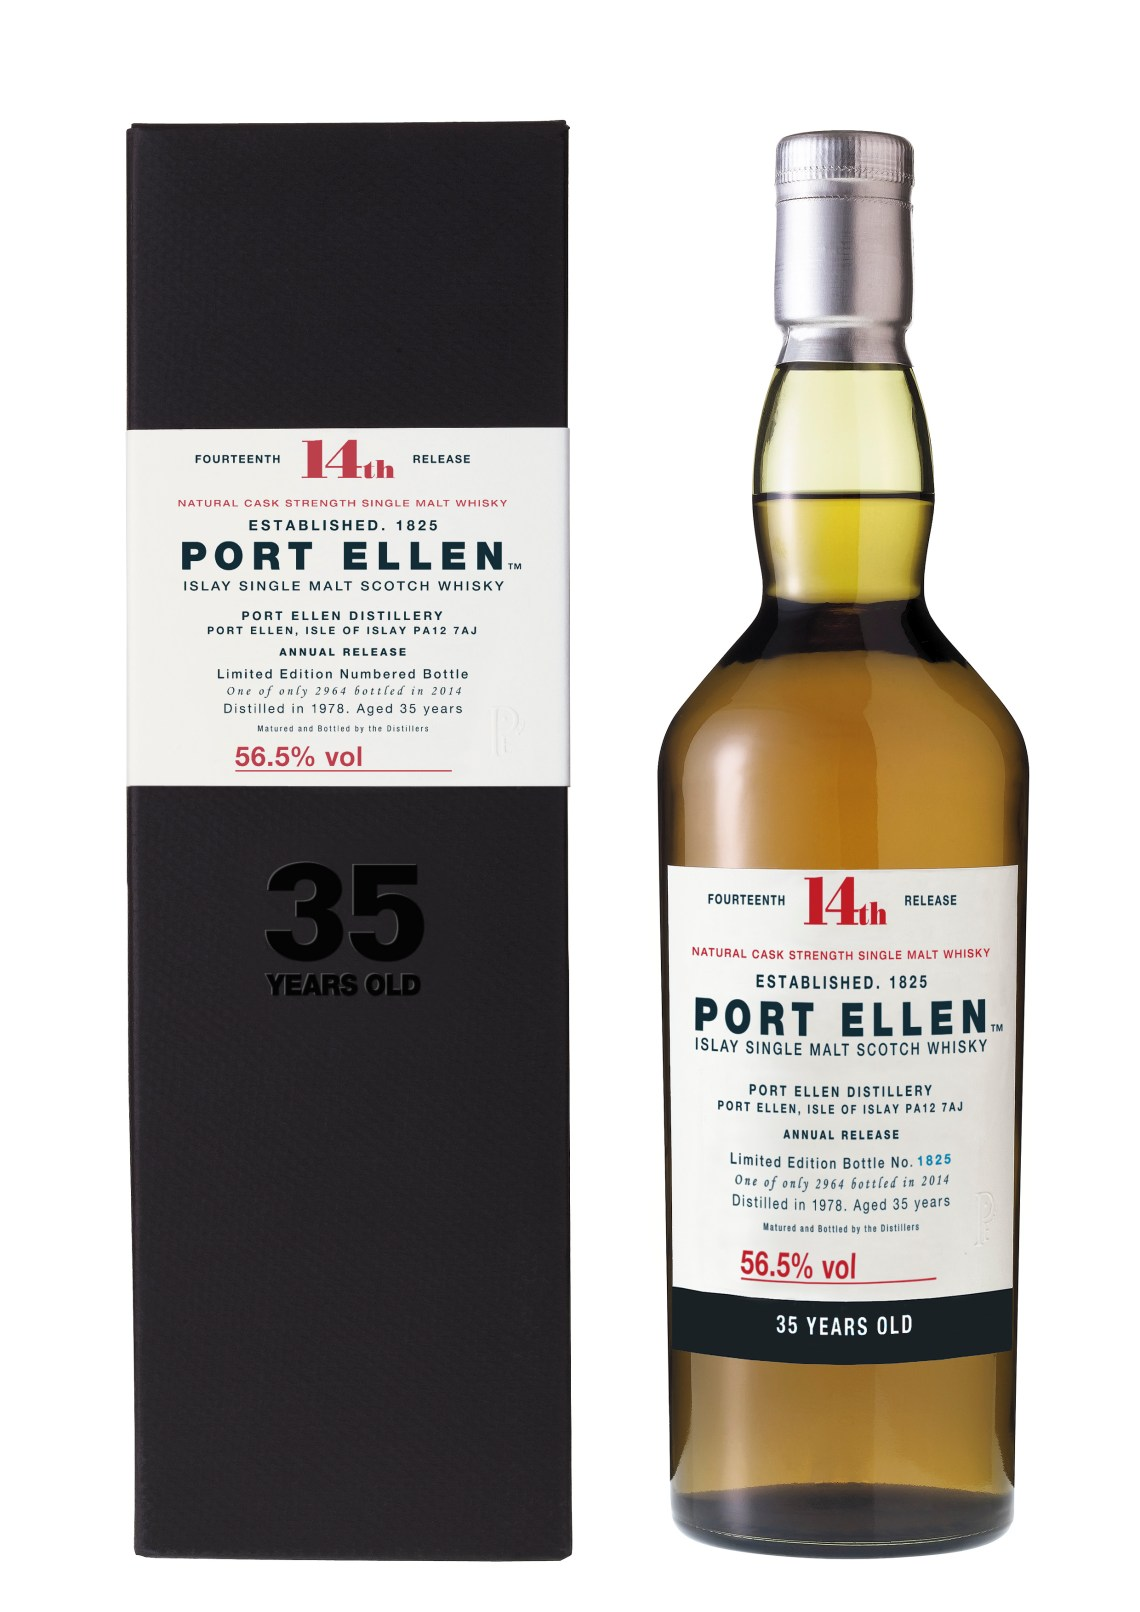 Port Ellen 35 Years Old Limited Edition 2014